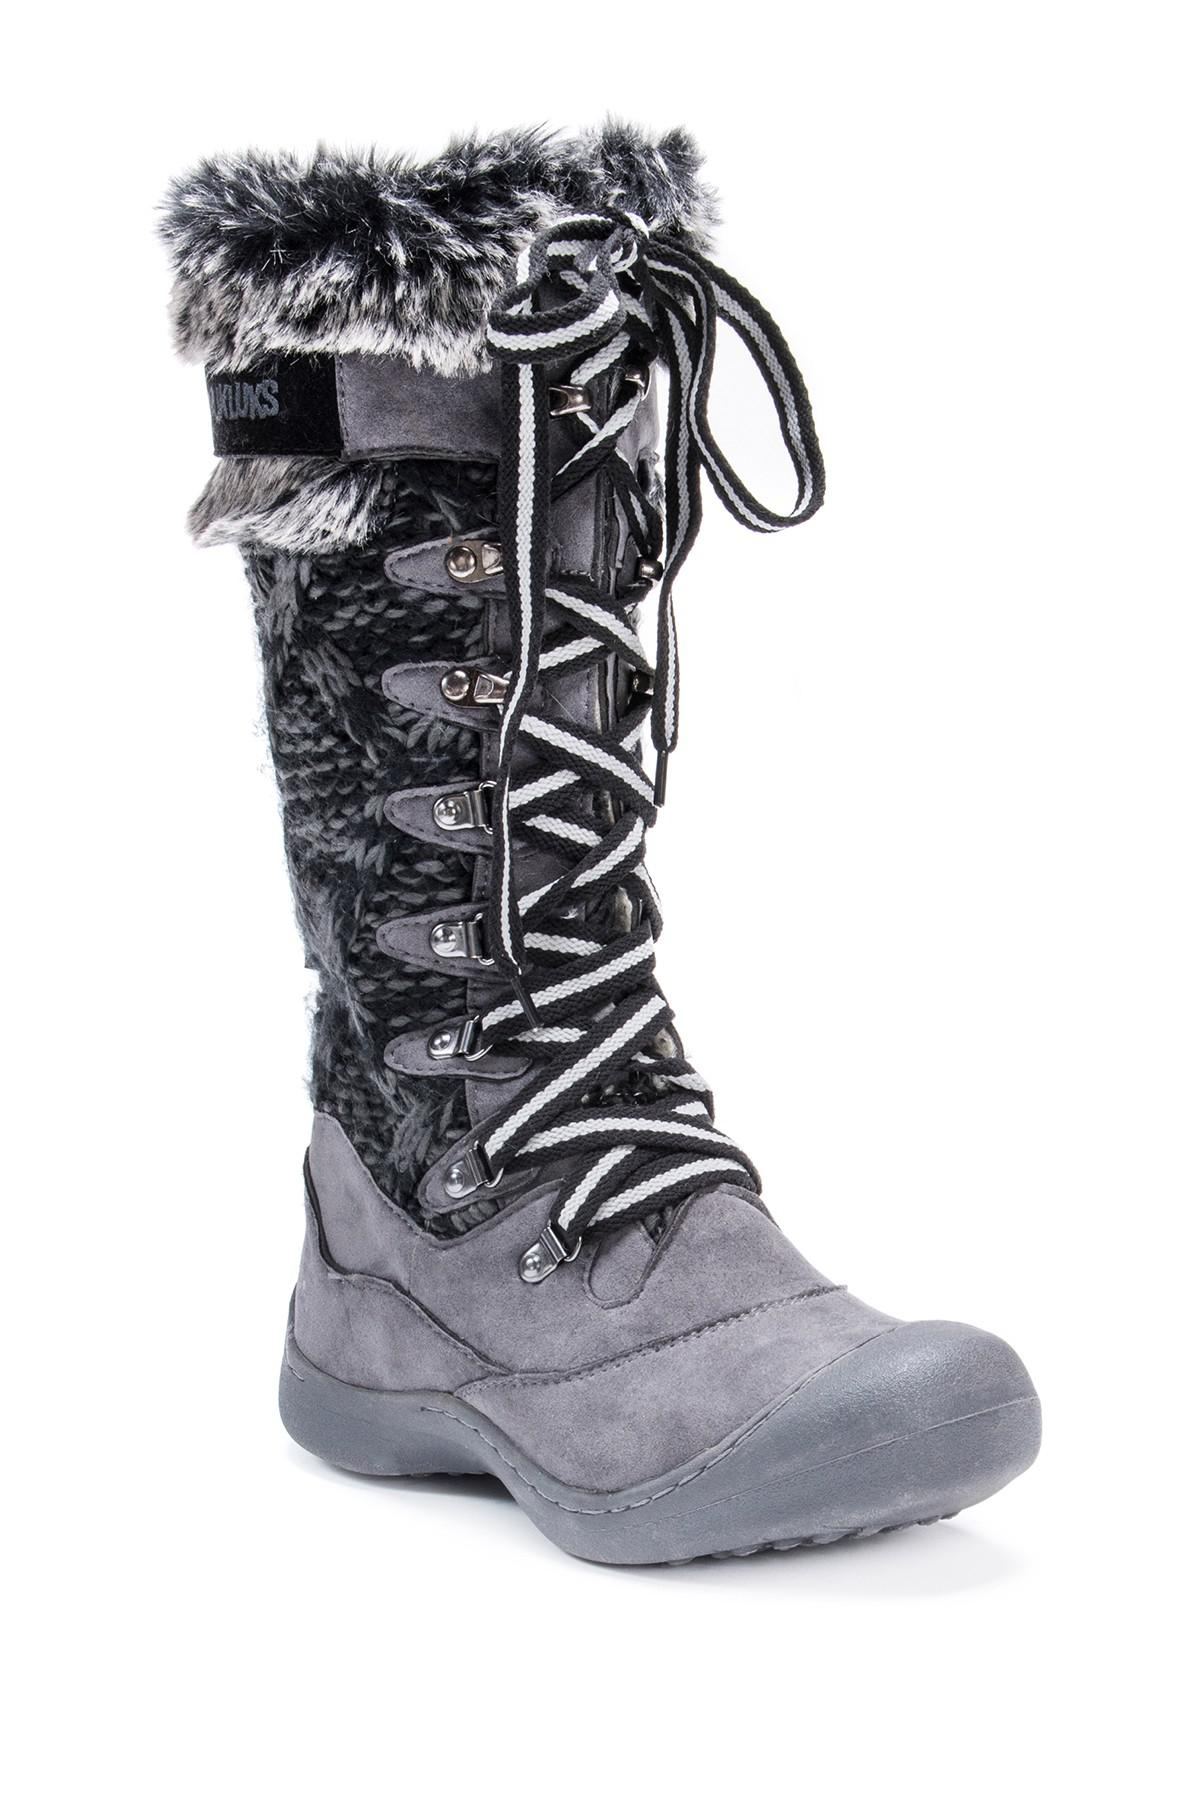 Muk Luks Gwen Faux Fur Lined Snow Boot In Grey Gray Lyst